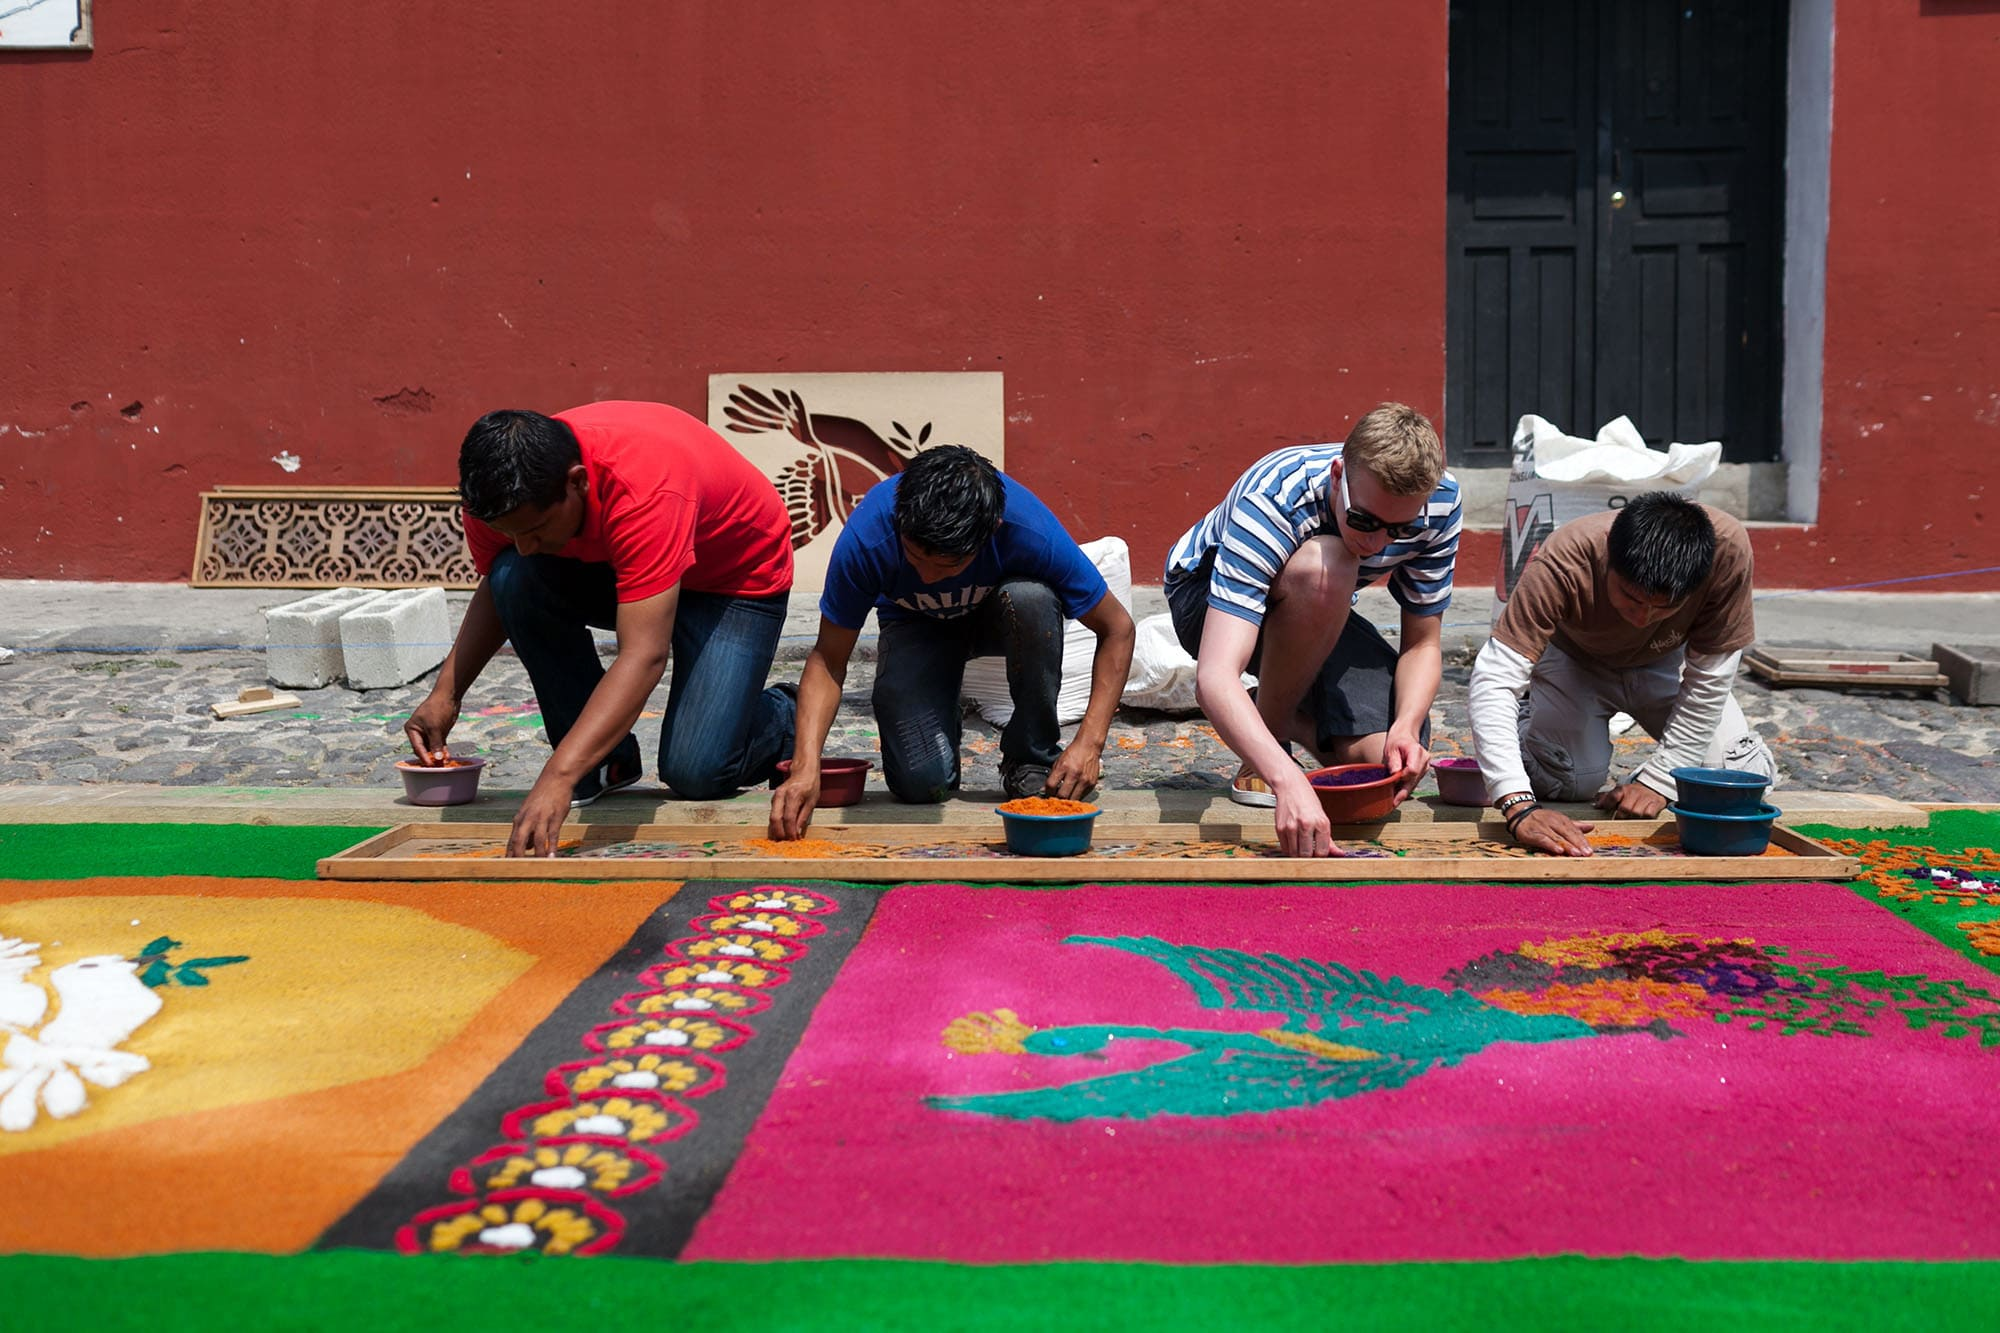 Creating an alfombra sawdust carpet for Semana Santa in Antigua, Guatemala.